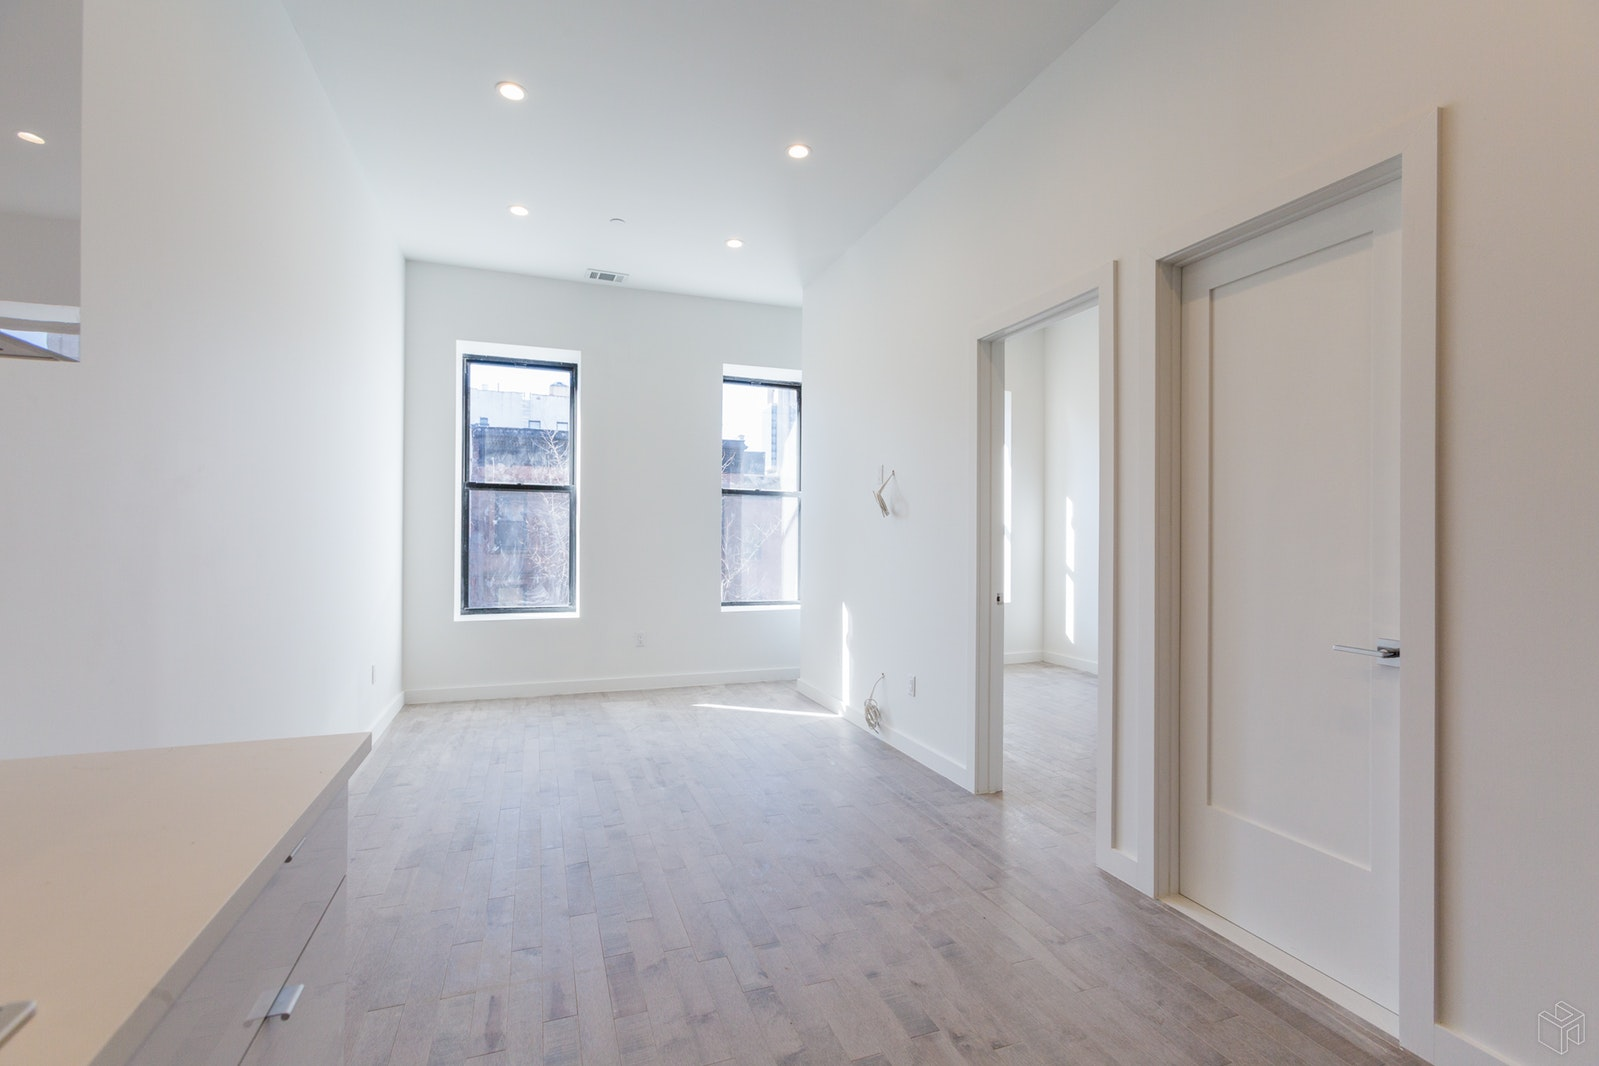 111 WEST 130TH STREET 2R, Harlem, $2,475, Web #: 19422350